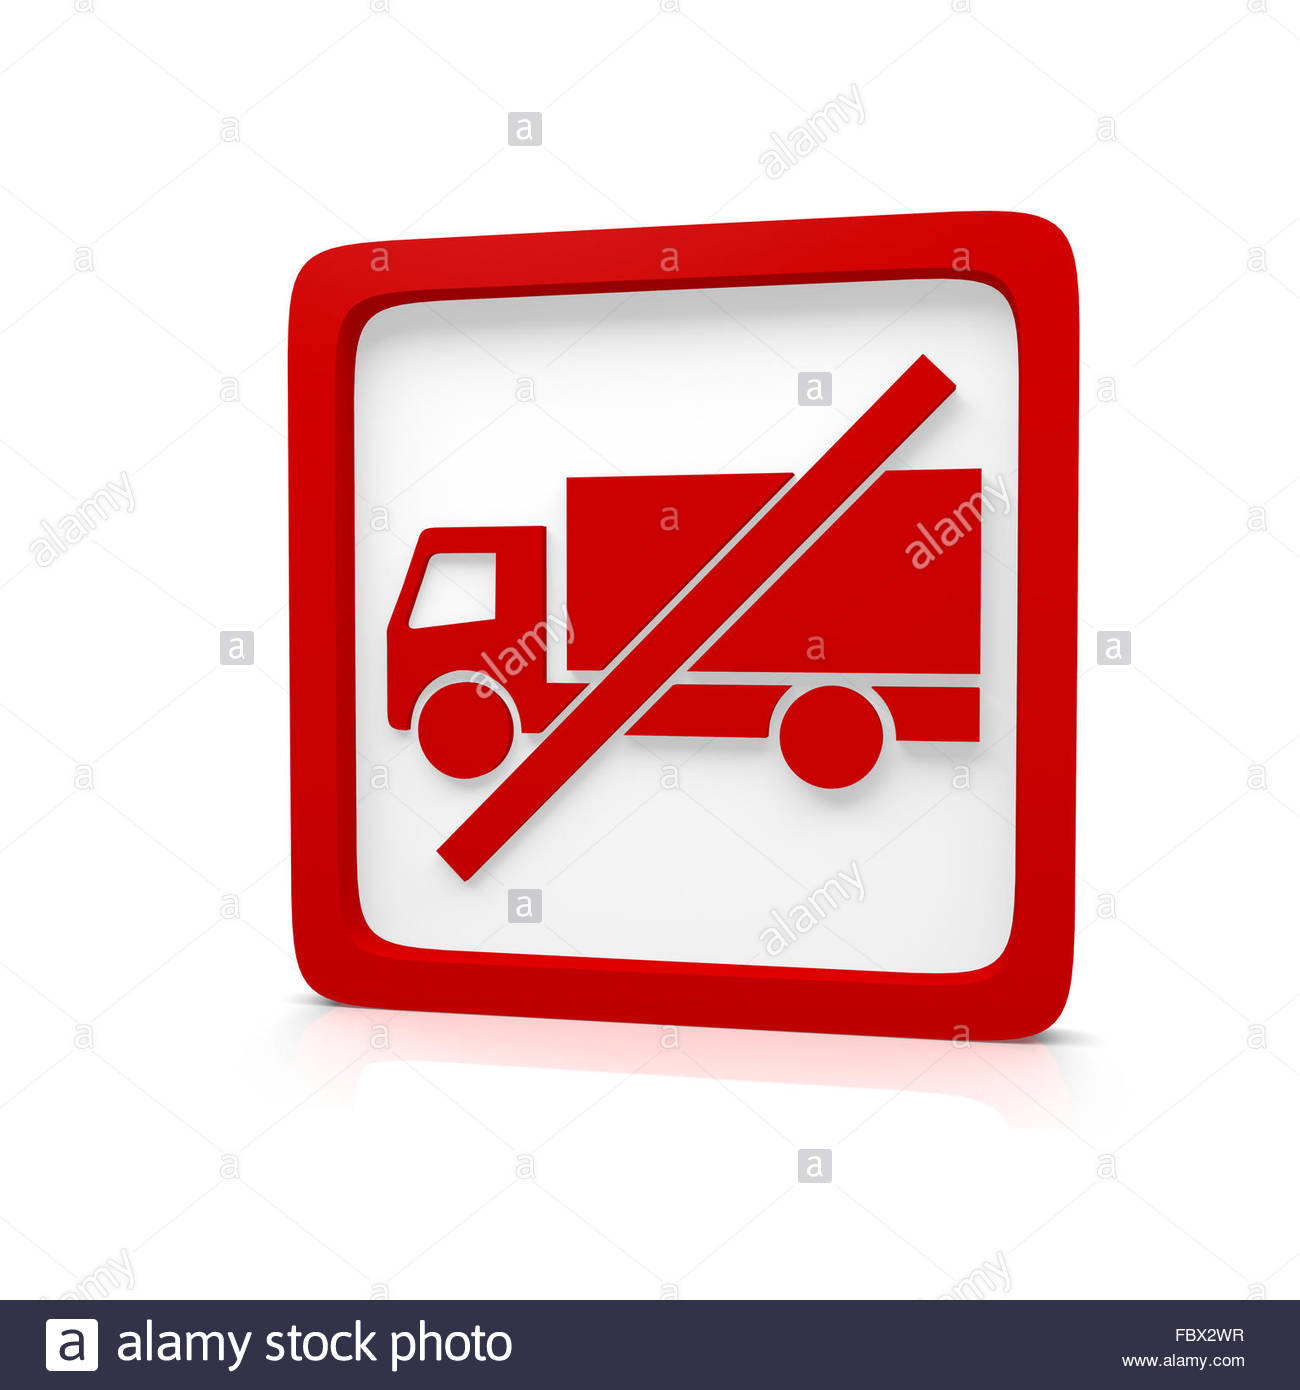 no truck - Stock Image